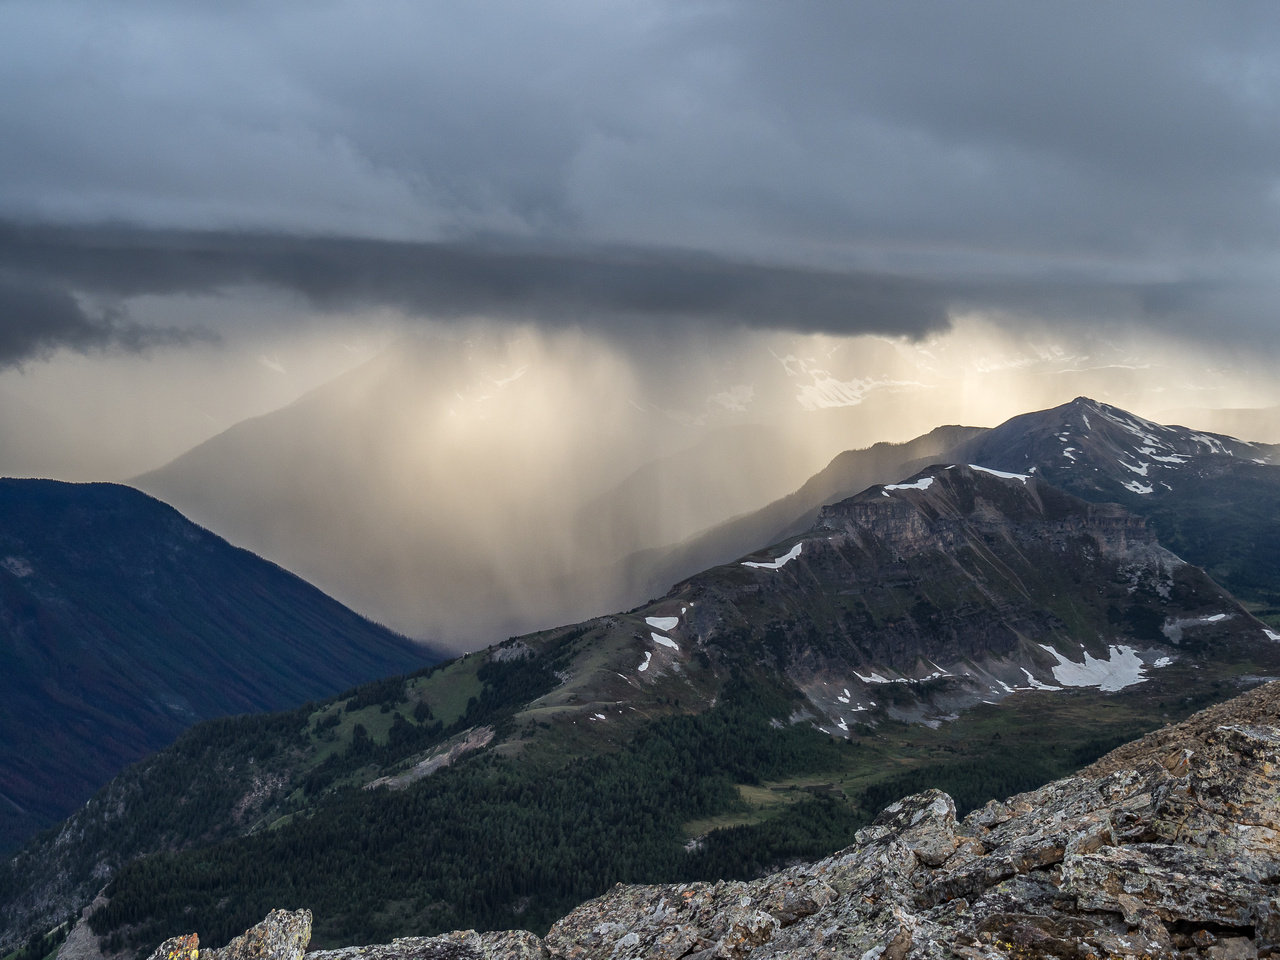 Dramatic back lighting on the storm from the setting sun over Citadel Peak.